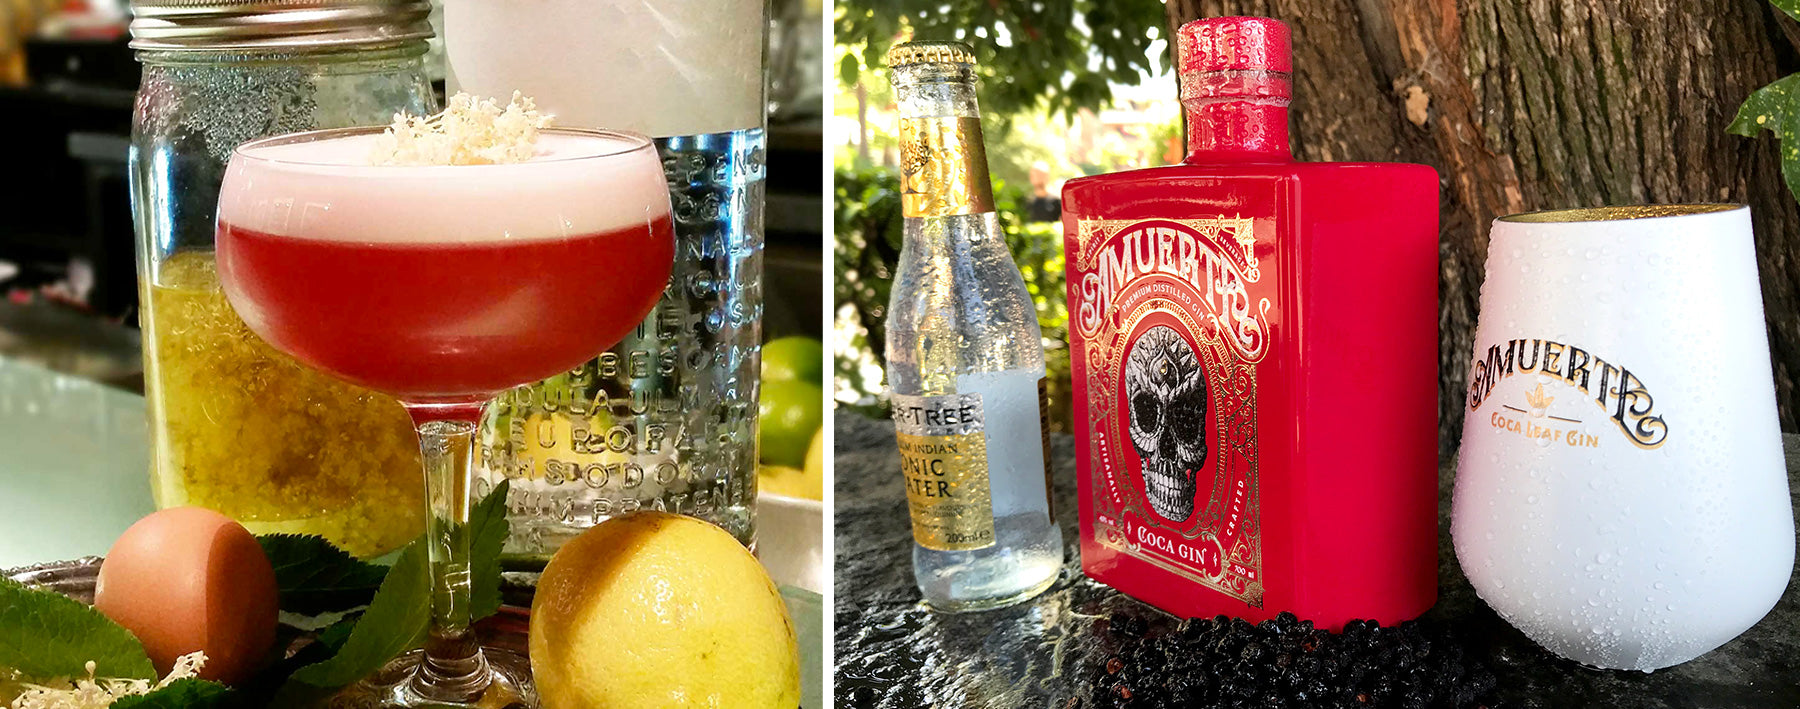 THE NEW AMUERTE RED COCKTAIL WITH TASMANIAN PEPPER